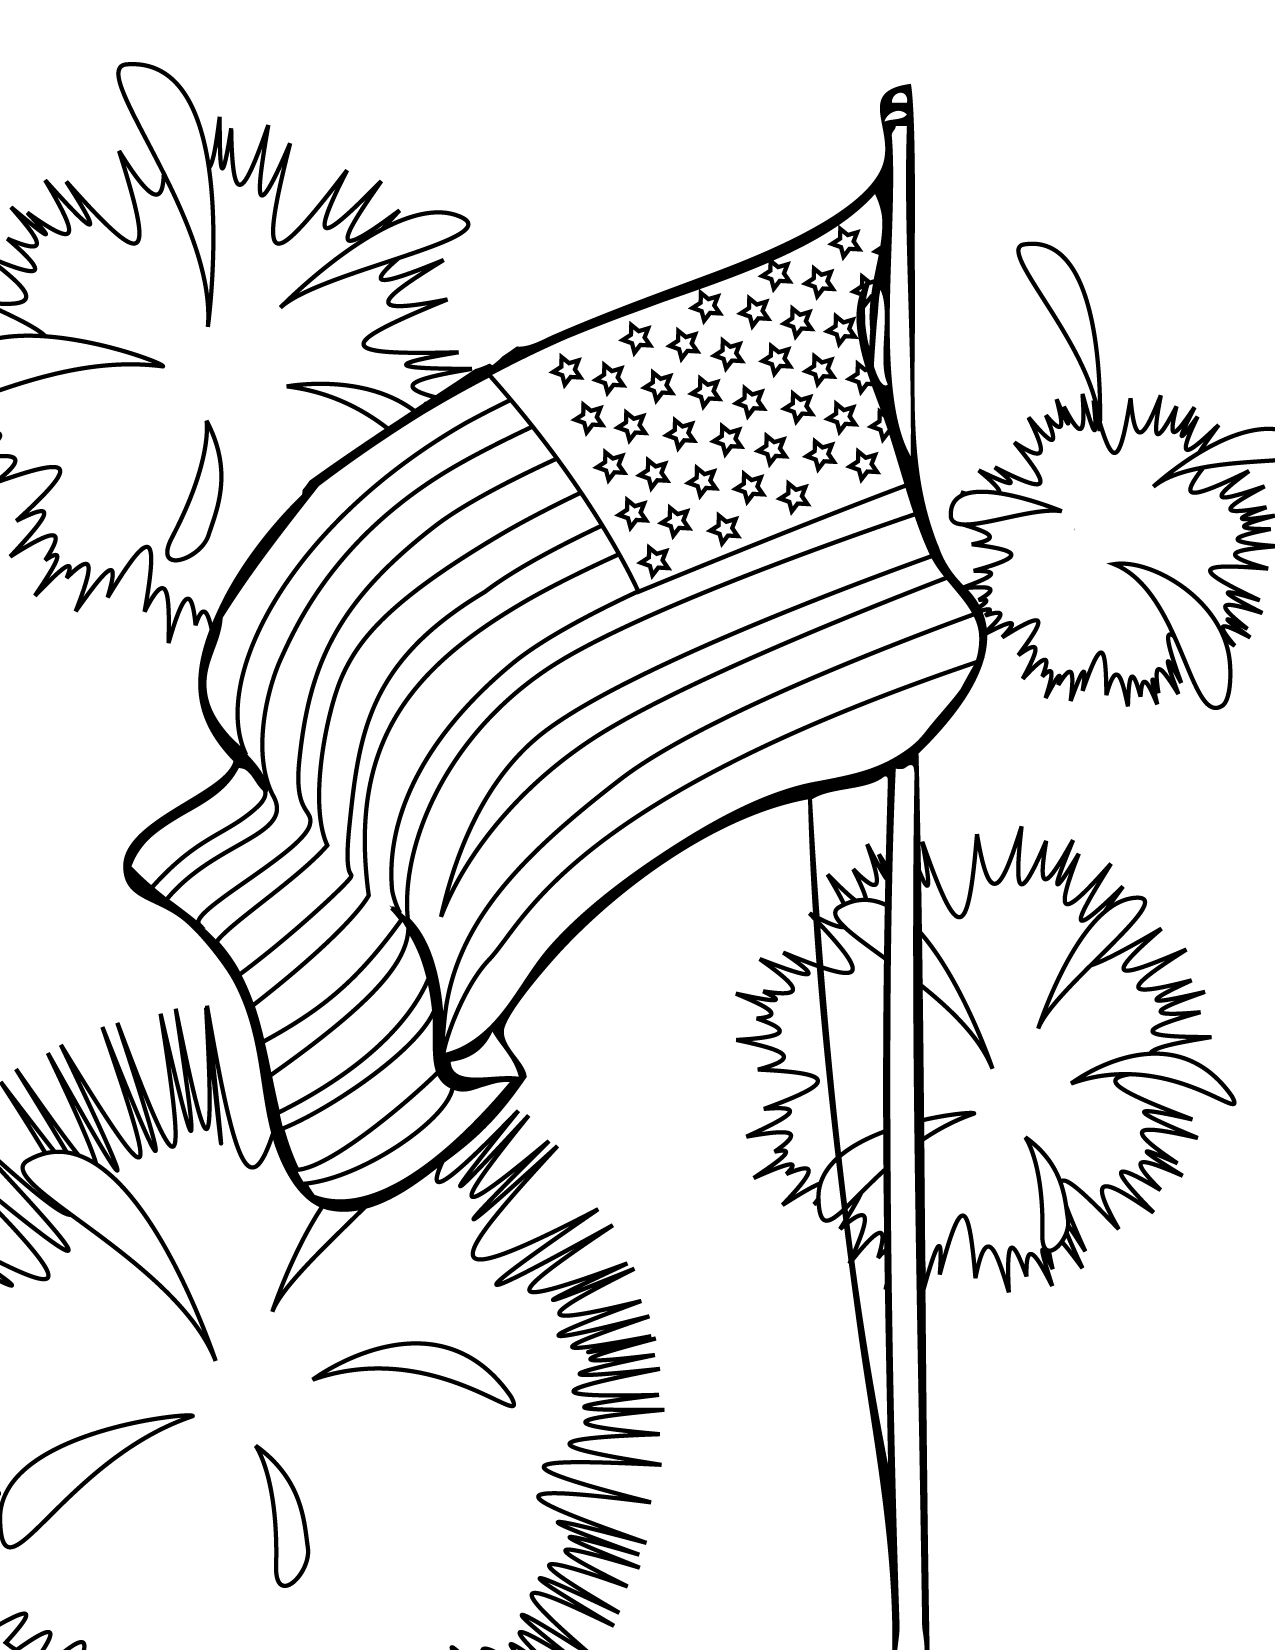 4 of july coloring sheets free printable fourth of july coloring pages 4 designs sheets coloring 4 of july